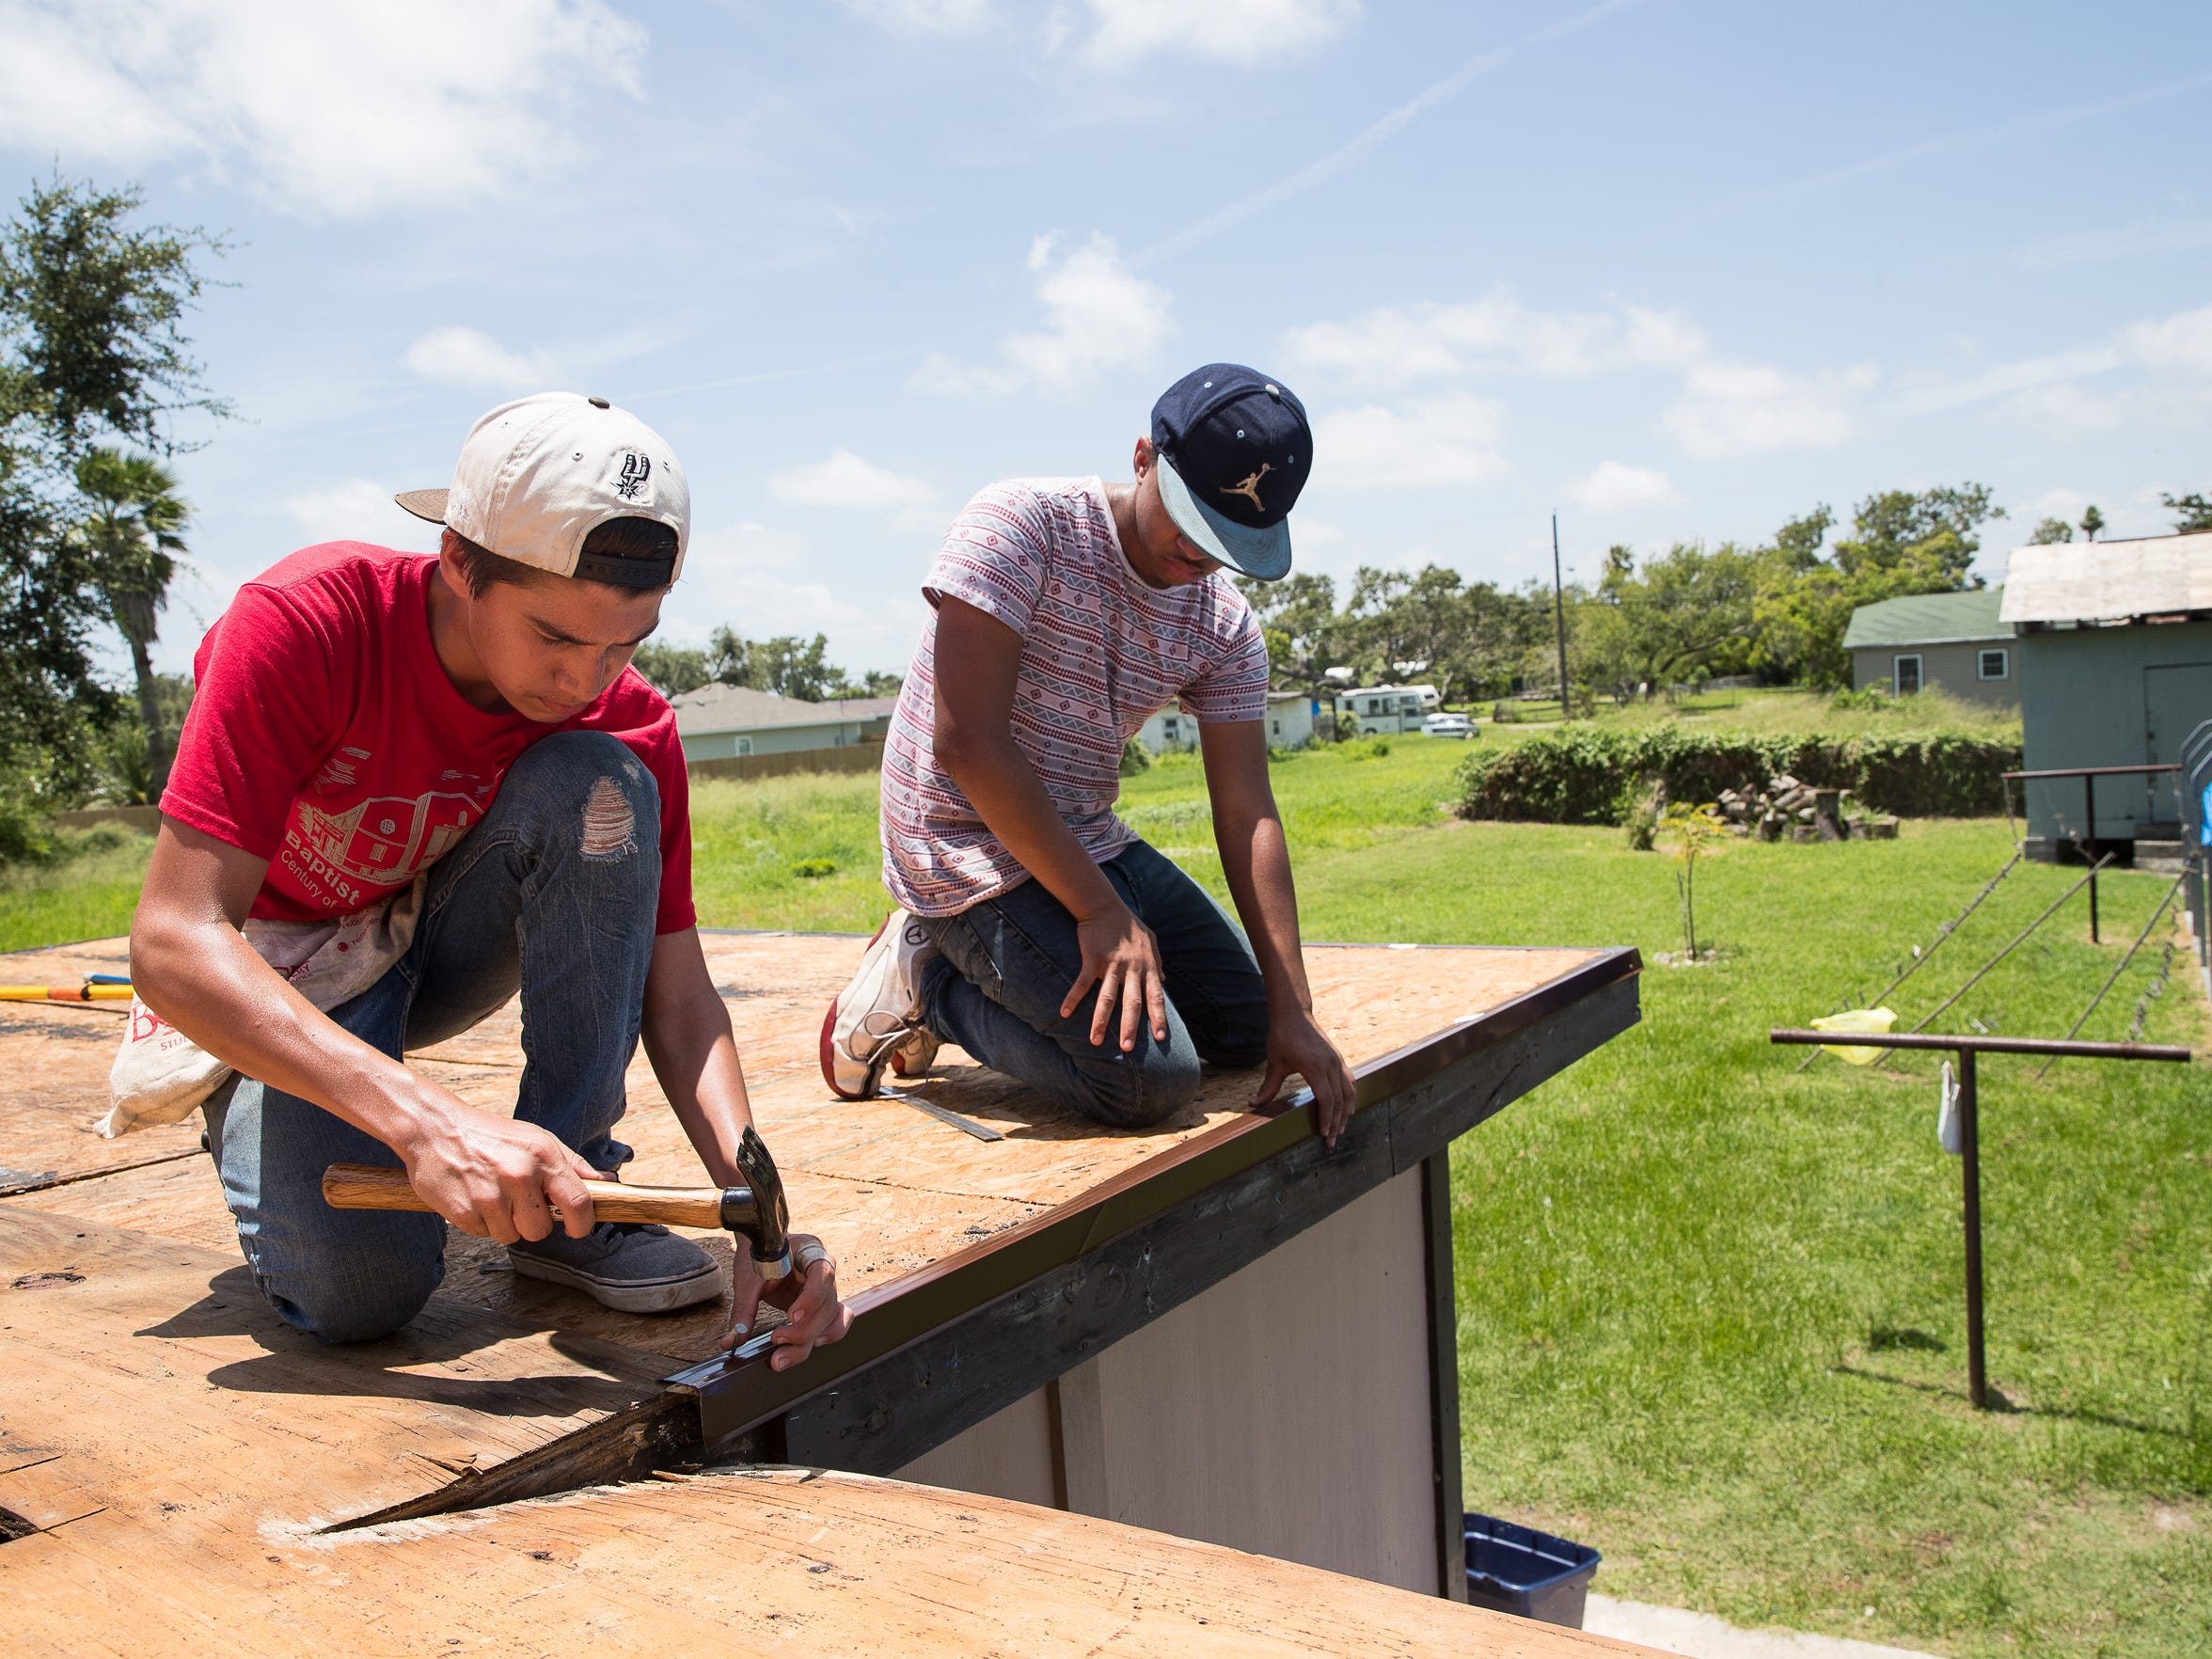 Joshua Hauser and Jacob Peeler, volunteering with the Bounce recovery project, help replace a roof damaged by Hurricane Harvey on a home in Rockport on Wednesday, July 18, 2018.